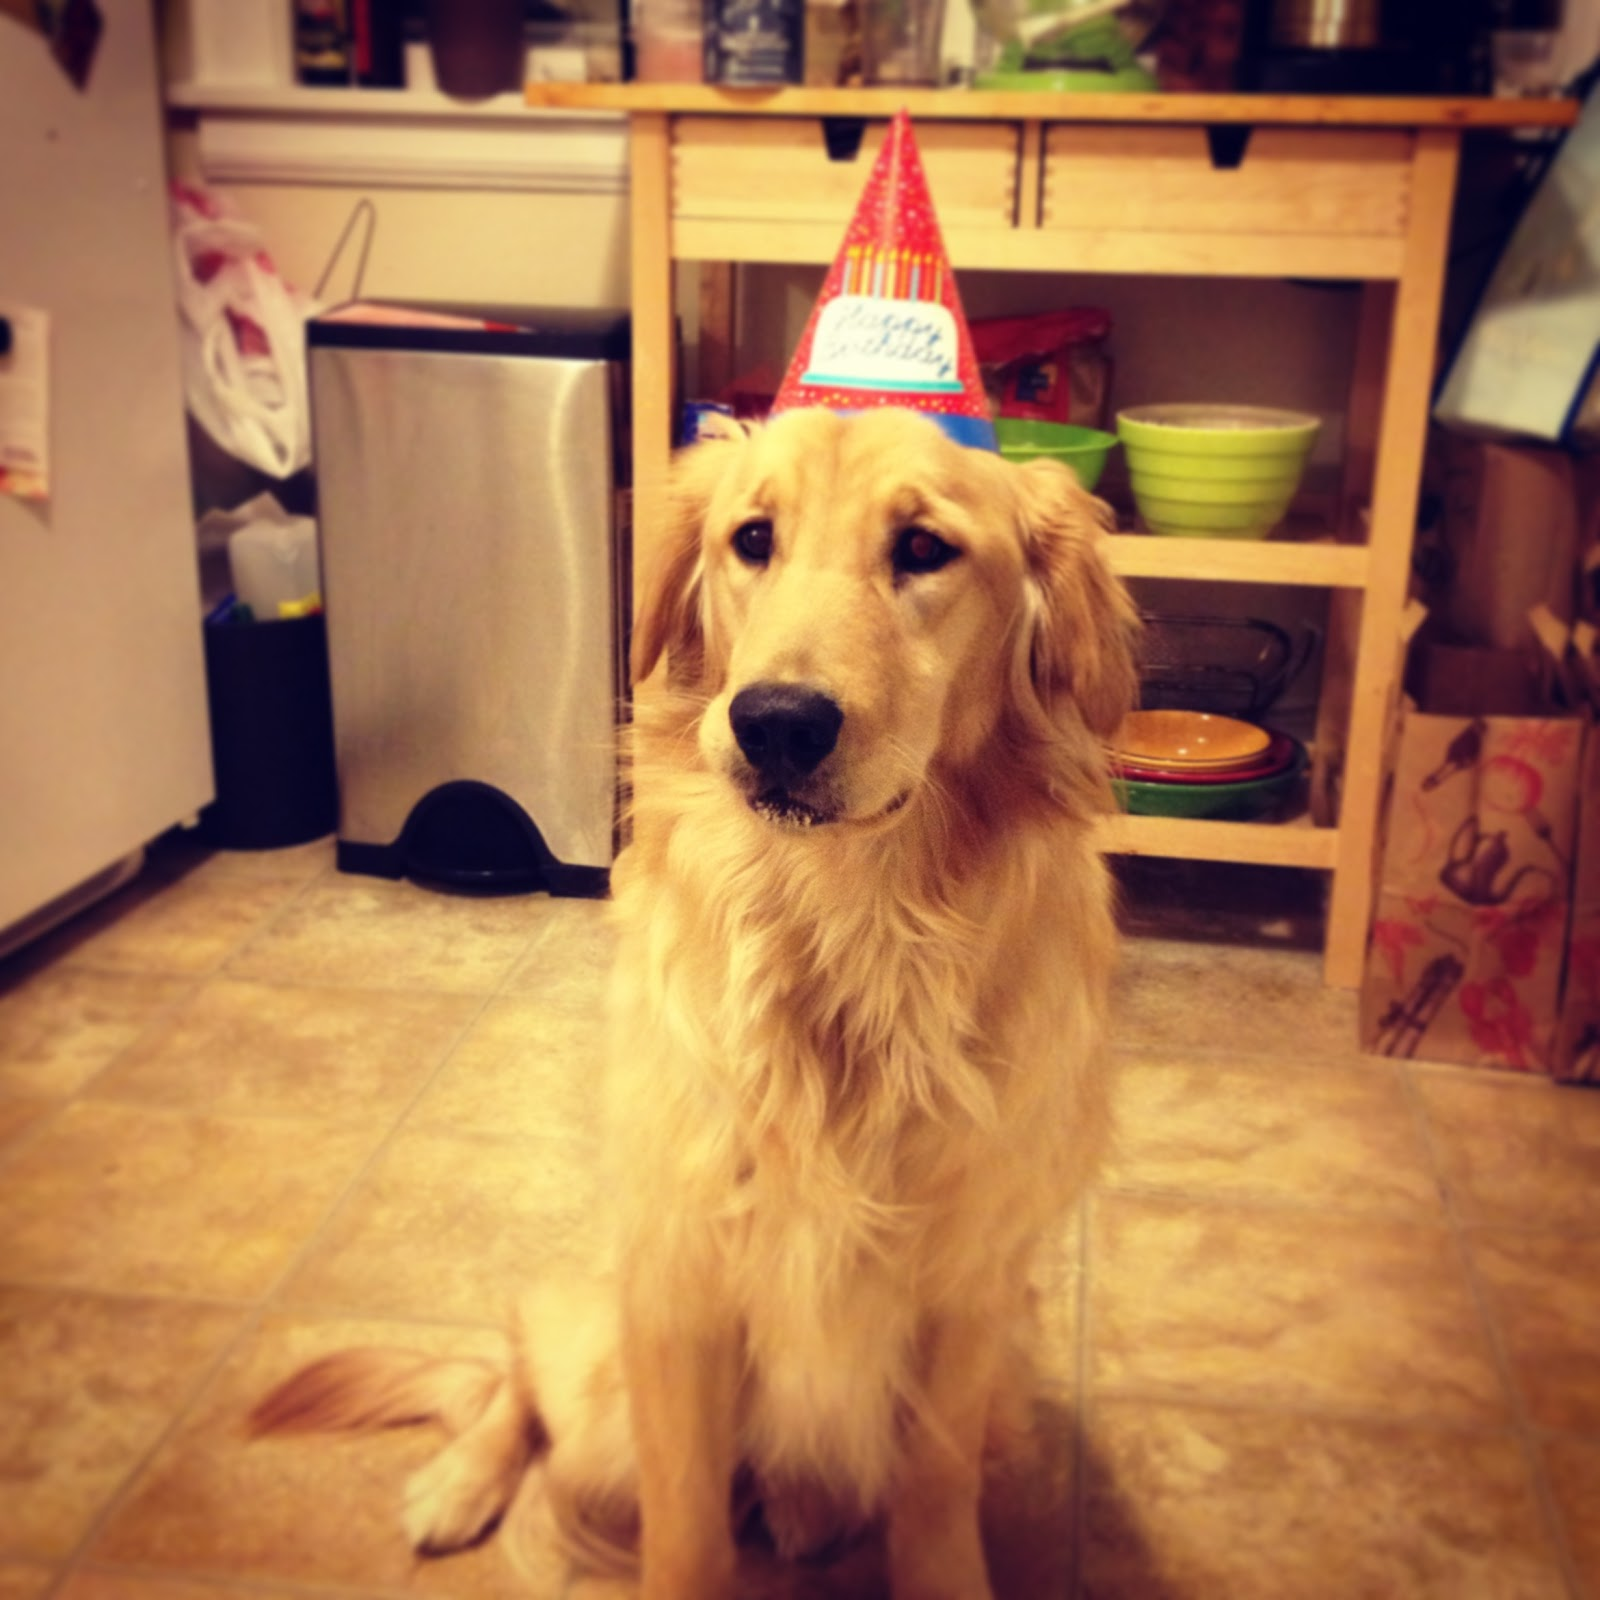 Friday Was Maddies 1st Birthday So Like Any Proud Puppy Mama I Bought Party Hats Made Her A Cake And Had For